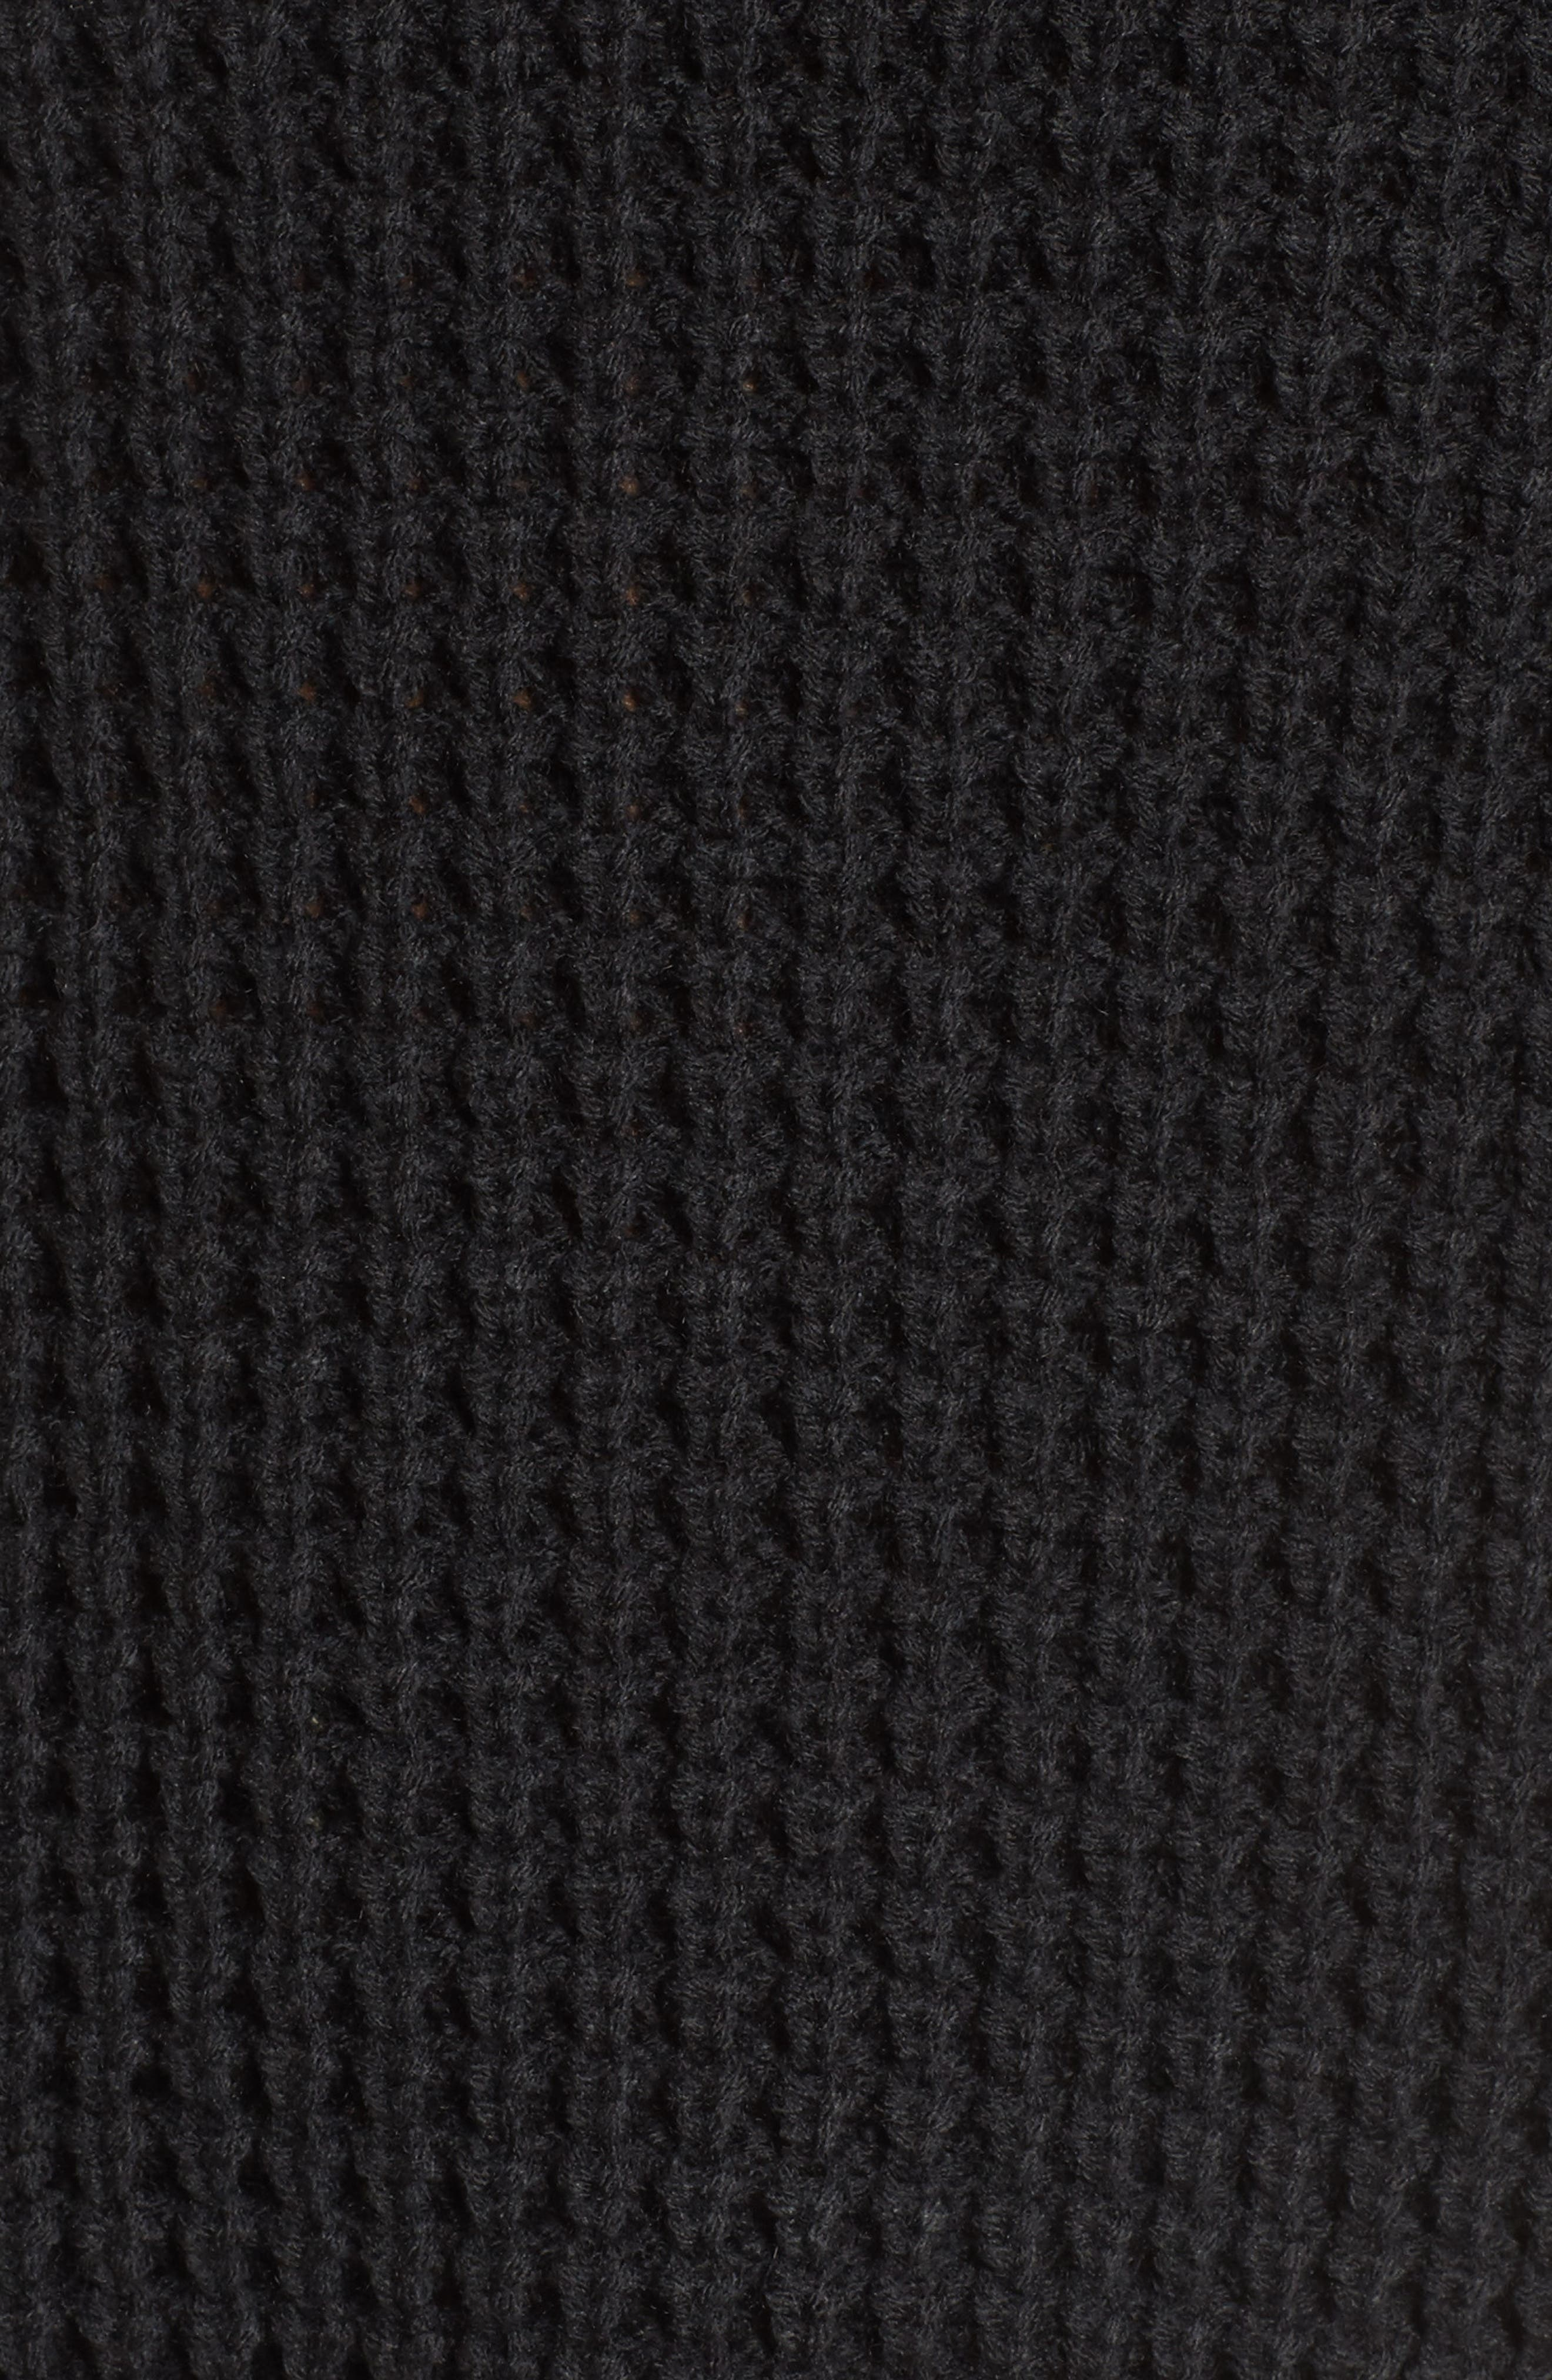 Cowl Neck Thermal Stitch Sweater,                             Alternate thumbnail 5, color,                             001